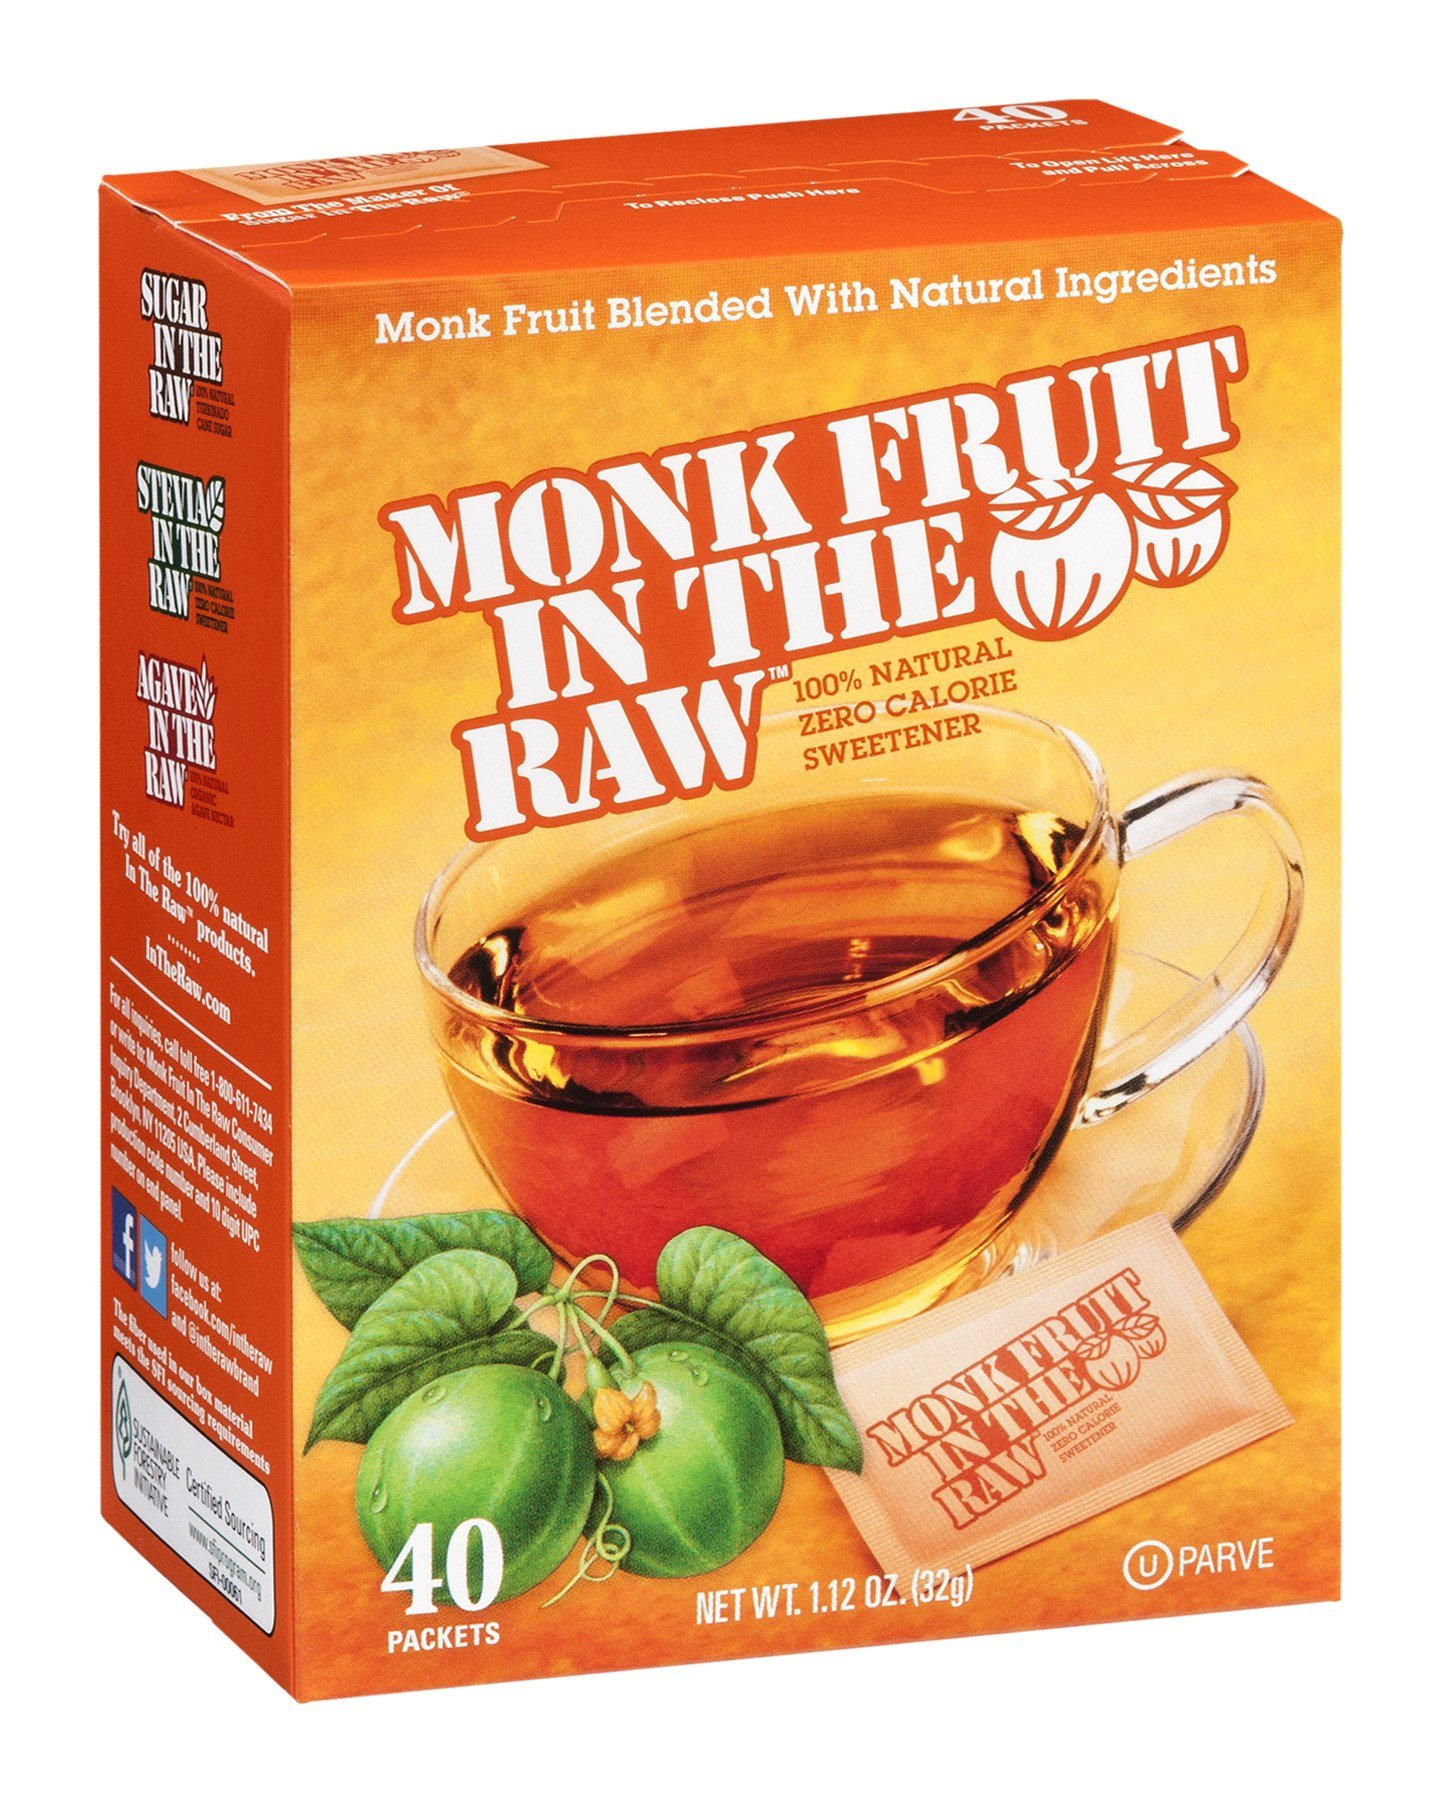 Monk Fruit In The Raw Zero Calorie Sweetener, 40 Count Boxes (PACK OF 4)